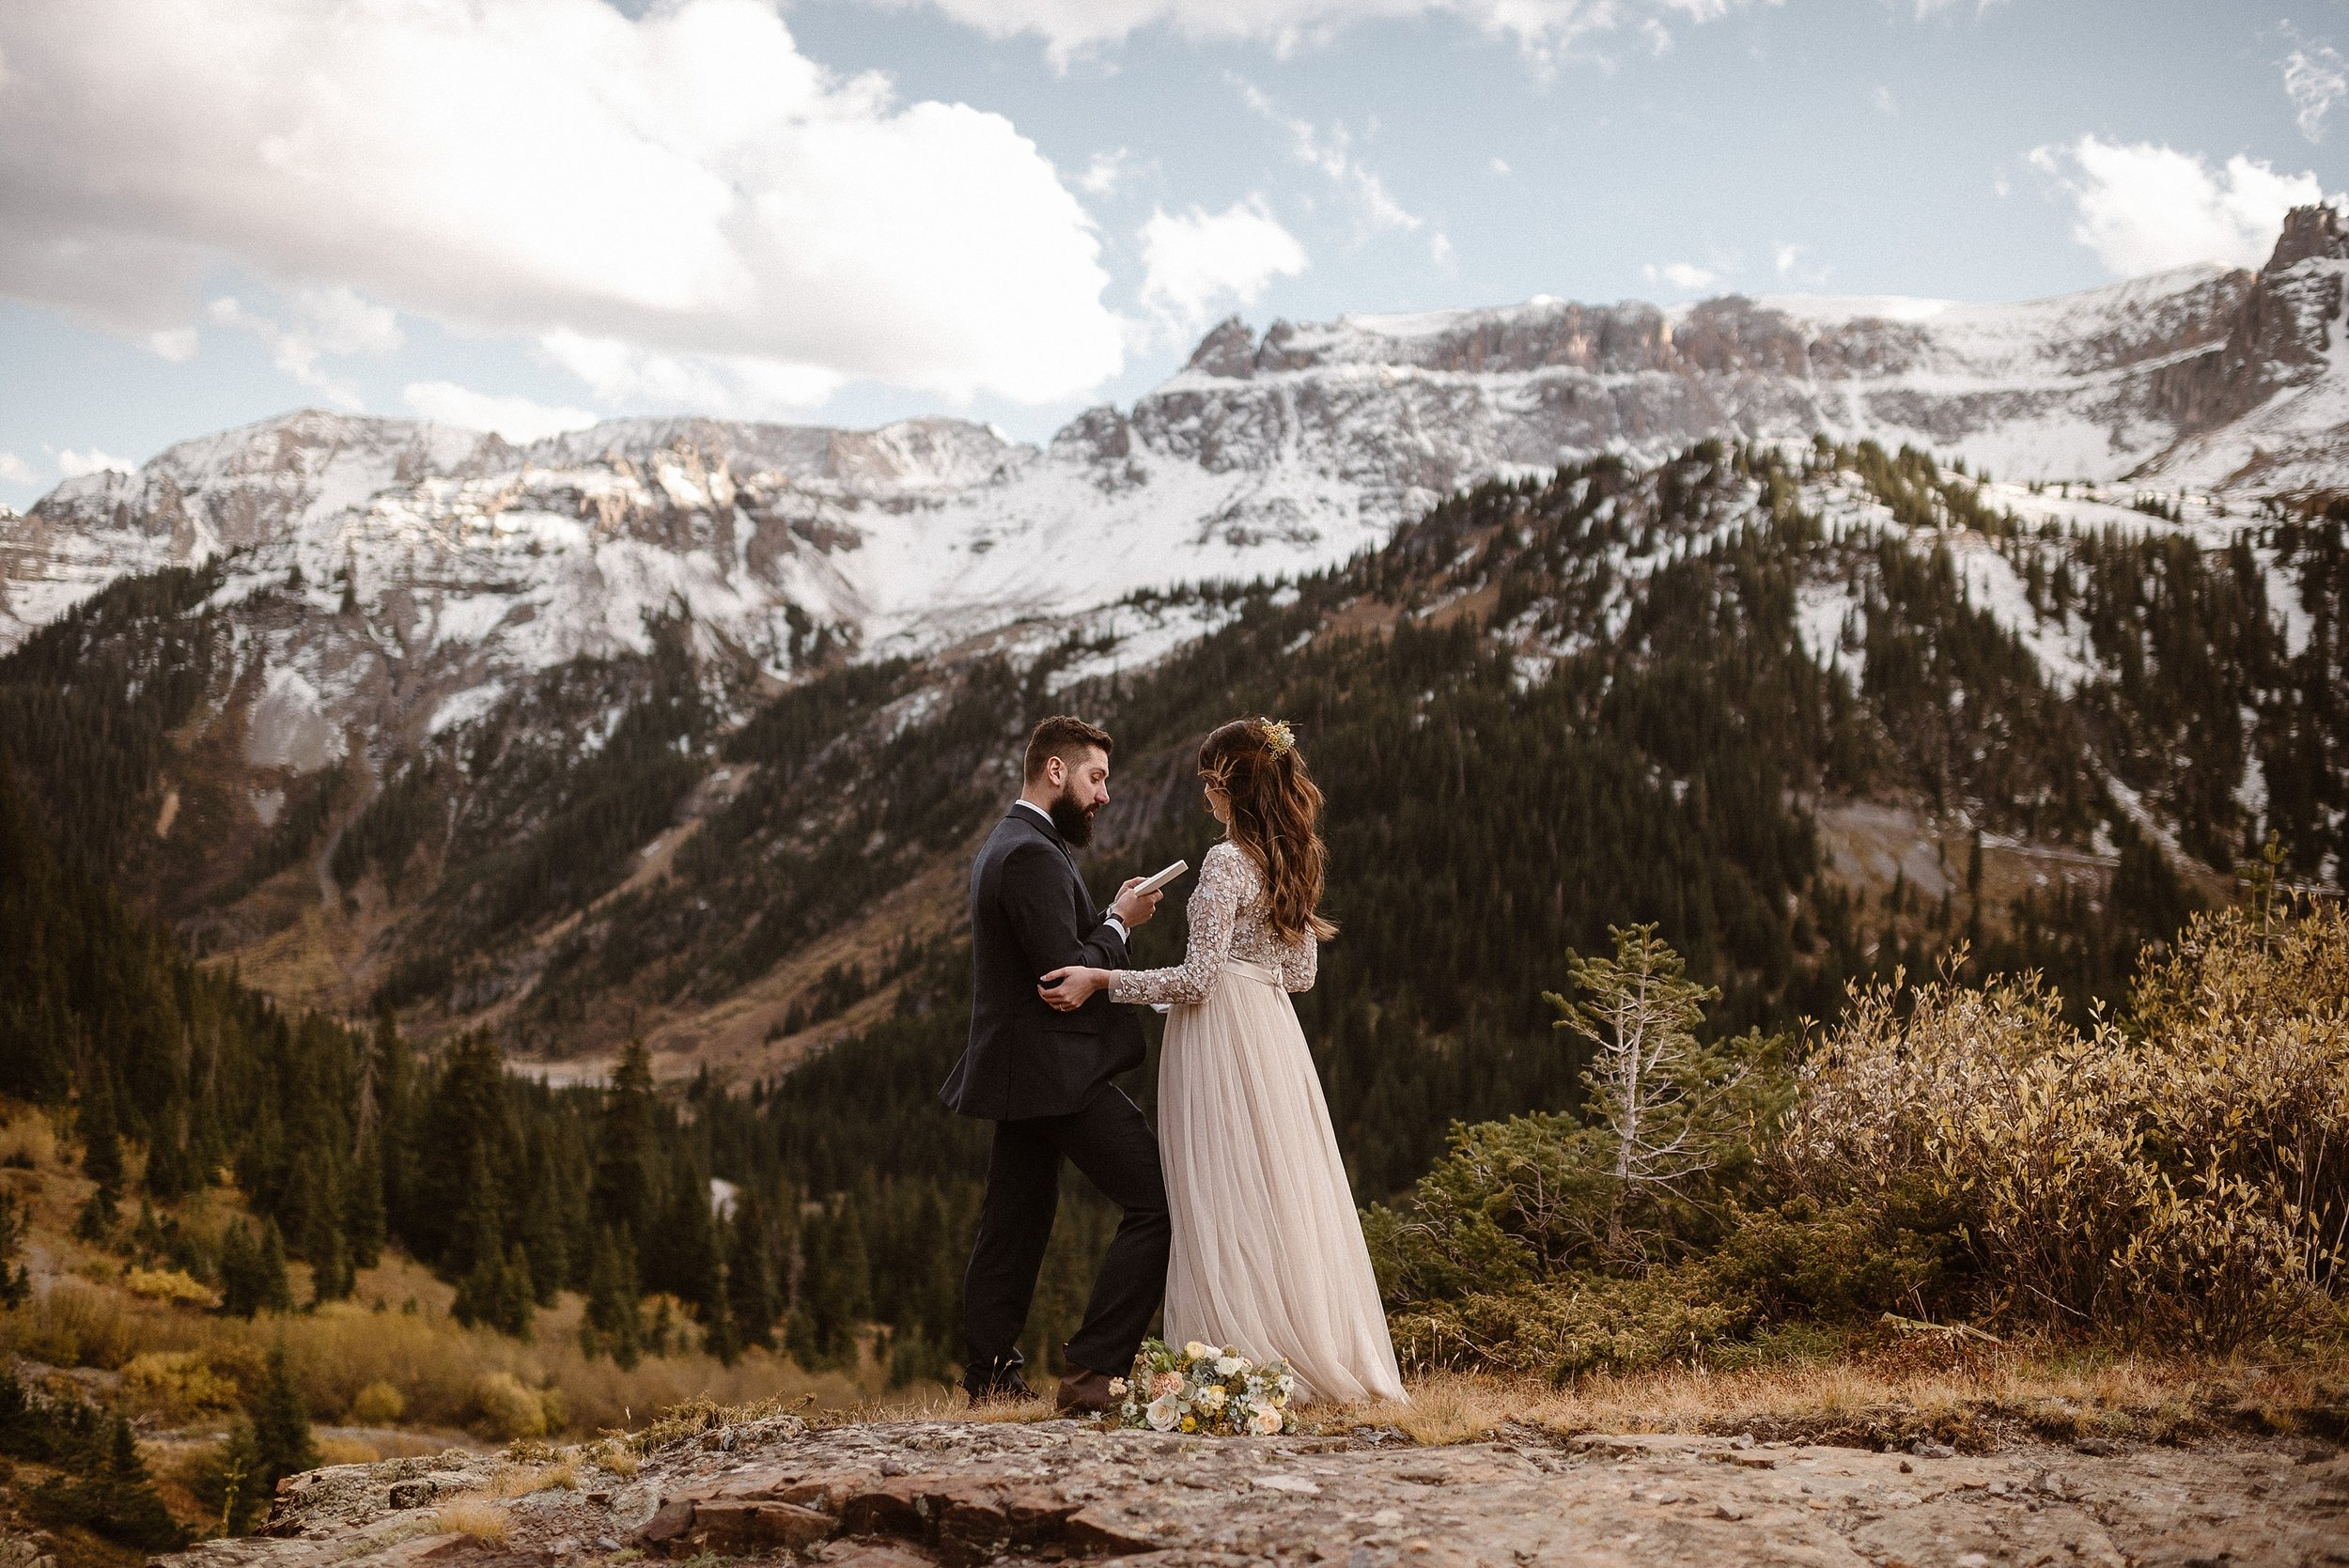 Dan told his bride of all the promises he would keep, the ways that he would continue to love and honor her in his intimate vows. He professed all these things high above the world in the San Juan Mountains near Ouray, Colorado where he and his bride had opted for adventure and hiked to a private location in Yankee Boy Basin with only their intimate wedding photographer Maddie Mae for their elopement.